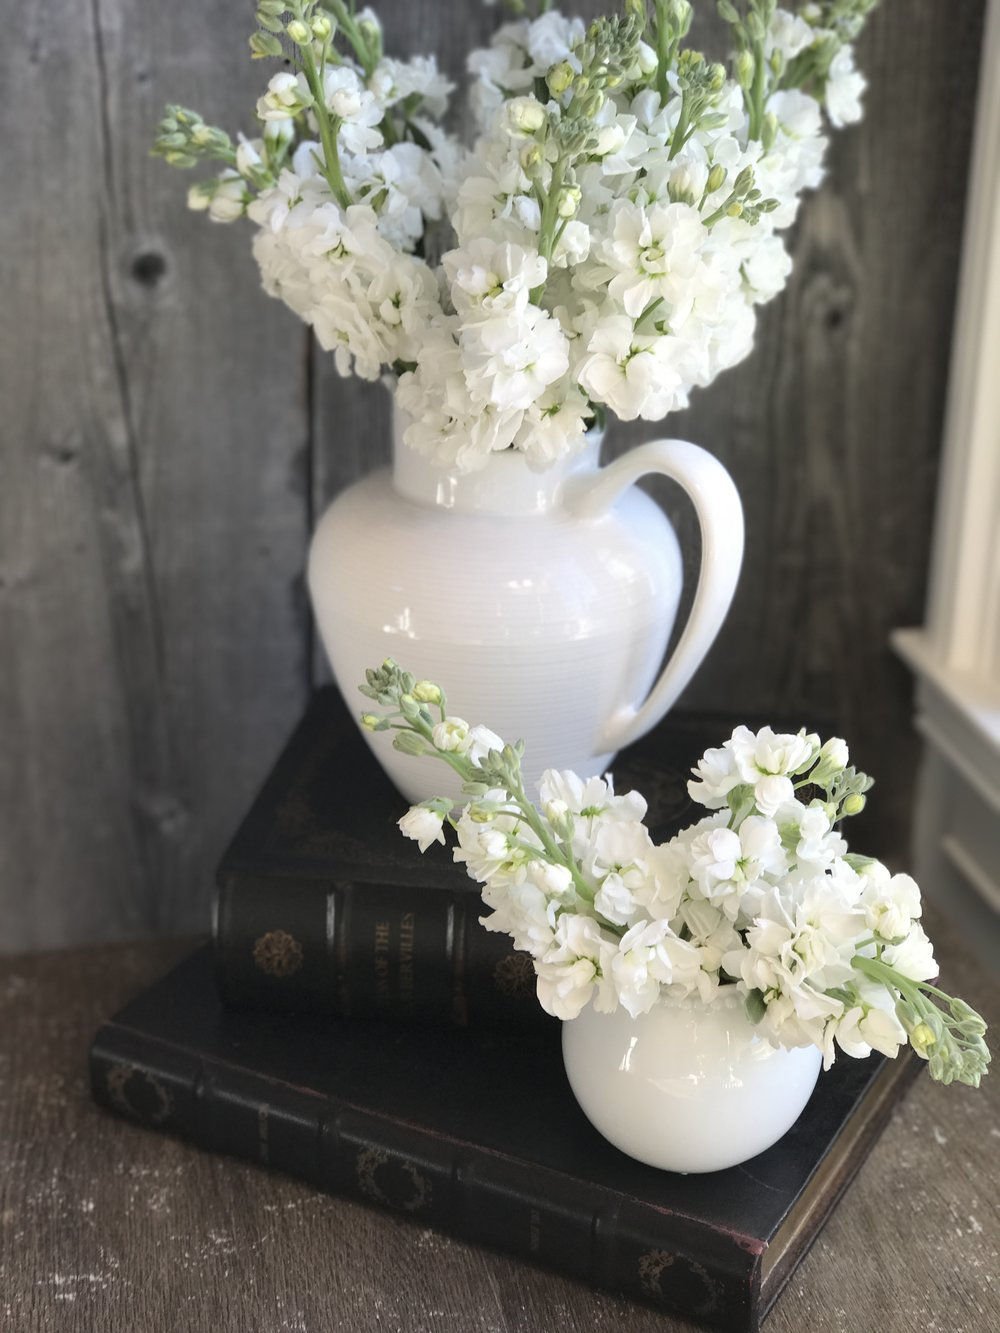 My favorite white pitcher and a little sugar bowl with beautiful stock.